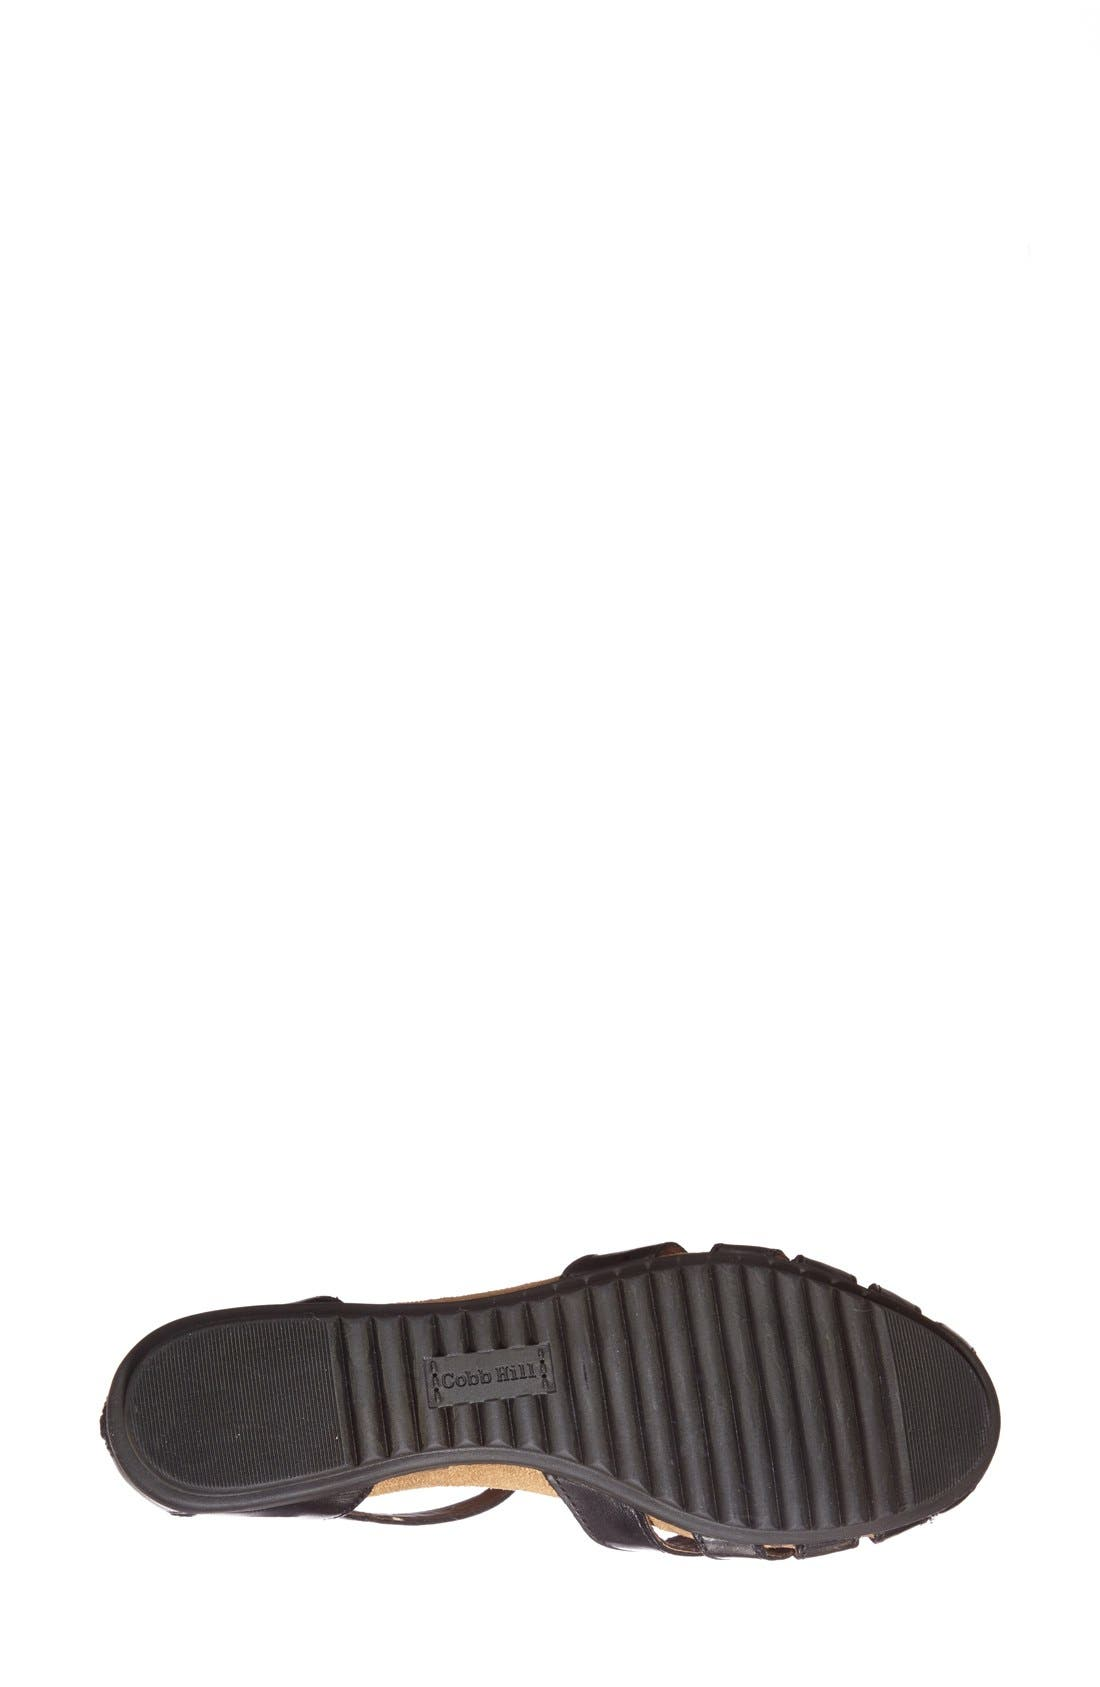 'Ireland' Leather Sandal,                             Alternate thumbnail 5, color,                             BLACK